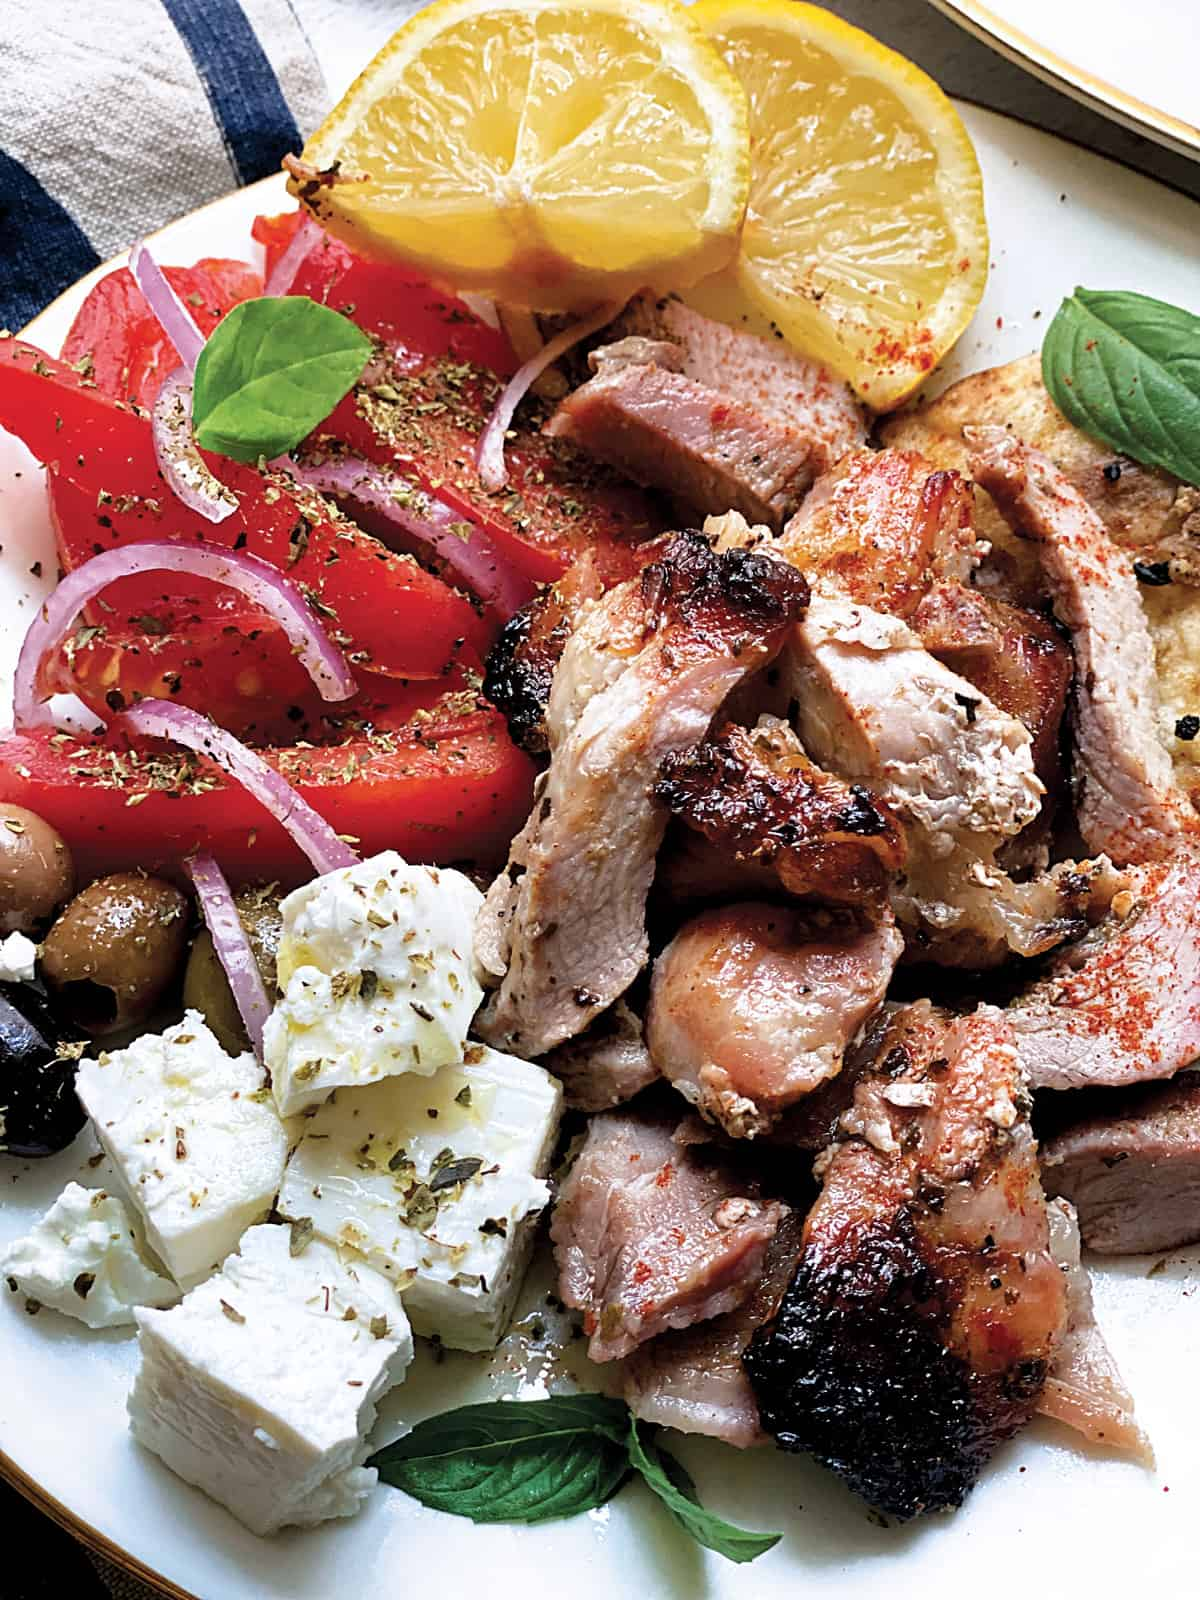 A plate with sliced tomatoes and onions, olives, feta cheese cubes, pieces of gyro, lemon wedges and pitas.